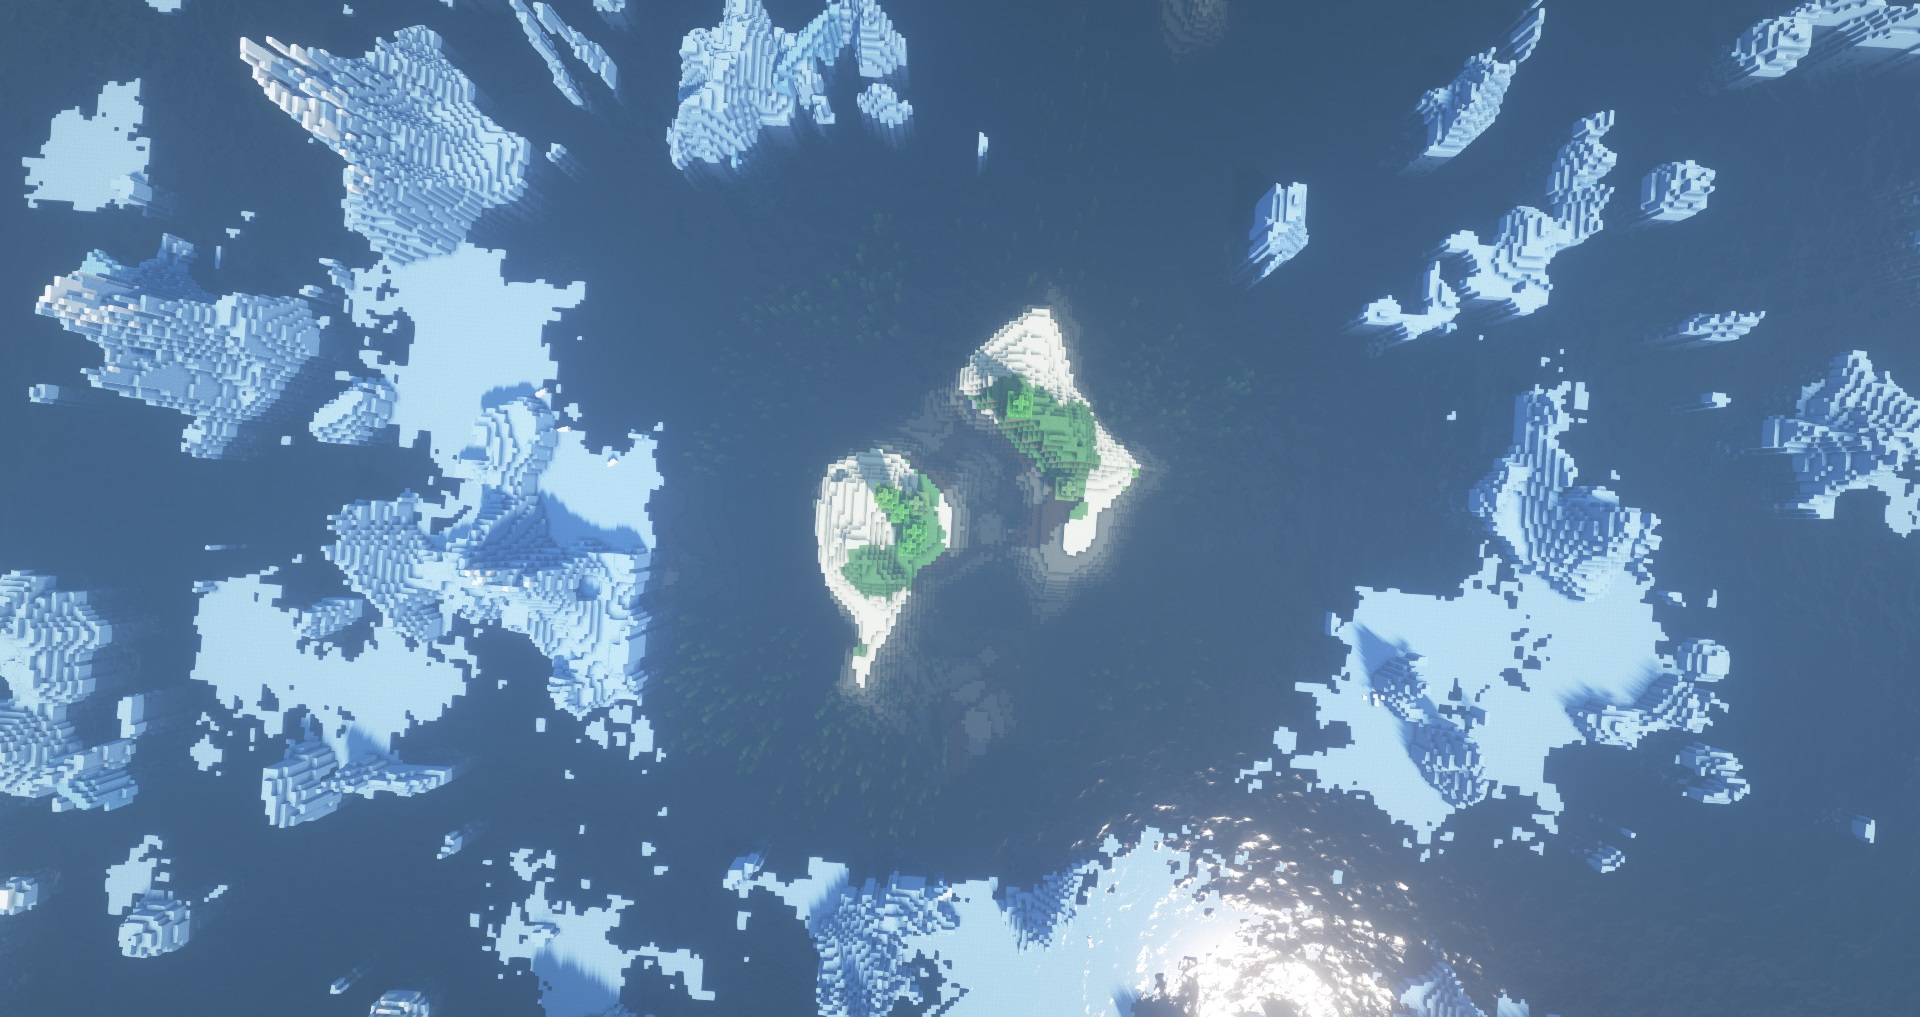 Minecraft seeds - isolated iceberg island - Two small grassy islands are surrounded on all sides by ice spikes and glaciers.